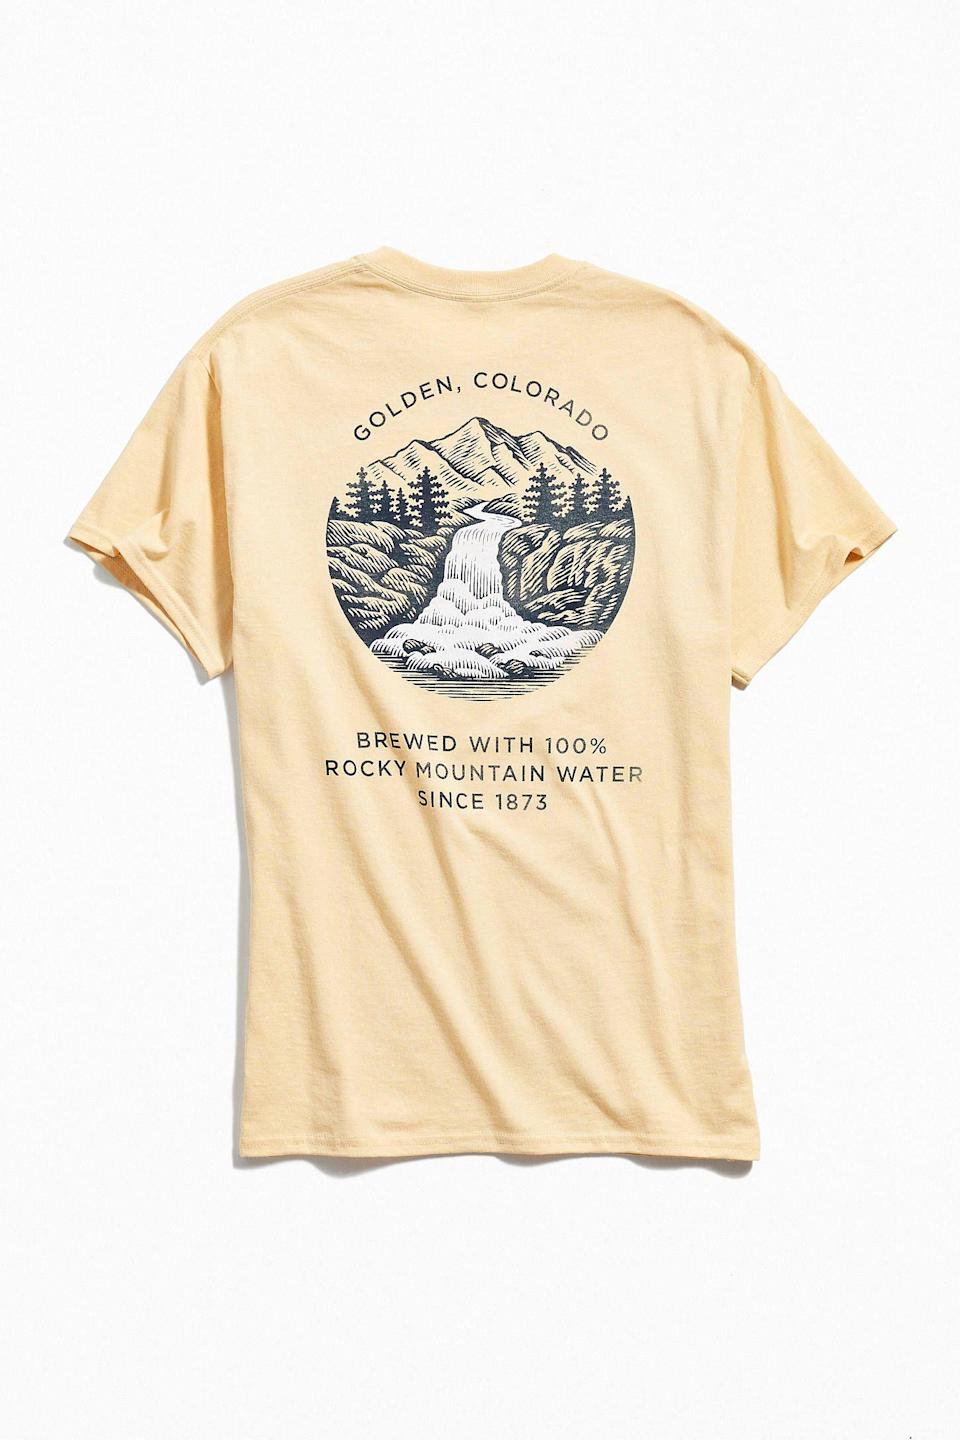 """<p><strong>Urban Outfitters</strong></p><p>urbanoutfitters.com</p><p><strong>$29.00</strong></p><p><a href=""""https://go.redirectingat.com?id=74968X1596630&url=https%3A%2F%2Fwww.urbanoutfitters.com%2Fshop%2Fcoors-golden-colorado-tee&sref=https%3A%2F%2Fwww.prevention.com%2Flife%2Fg27288061%2Ffathers-day-gift-ideas%2F"""" rel=""""nofollow noopener"""" target=""""_blank"""" data-ylk=""""slk:Shop Now"""" class=""""link rapid-noclick-resp"""">Shop Now</a></p><p>The easiest way to make Dad's day is to give him something that he'll actually use—and this soft, top-rated tee is practically begging to be worn at his next cookout or camping trip. (Bonus points if he's a Coors guy.)</p>"""